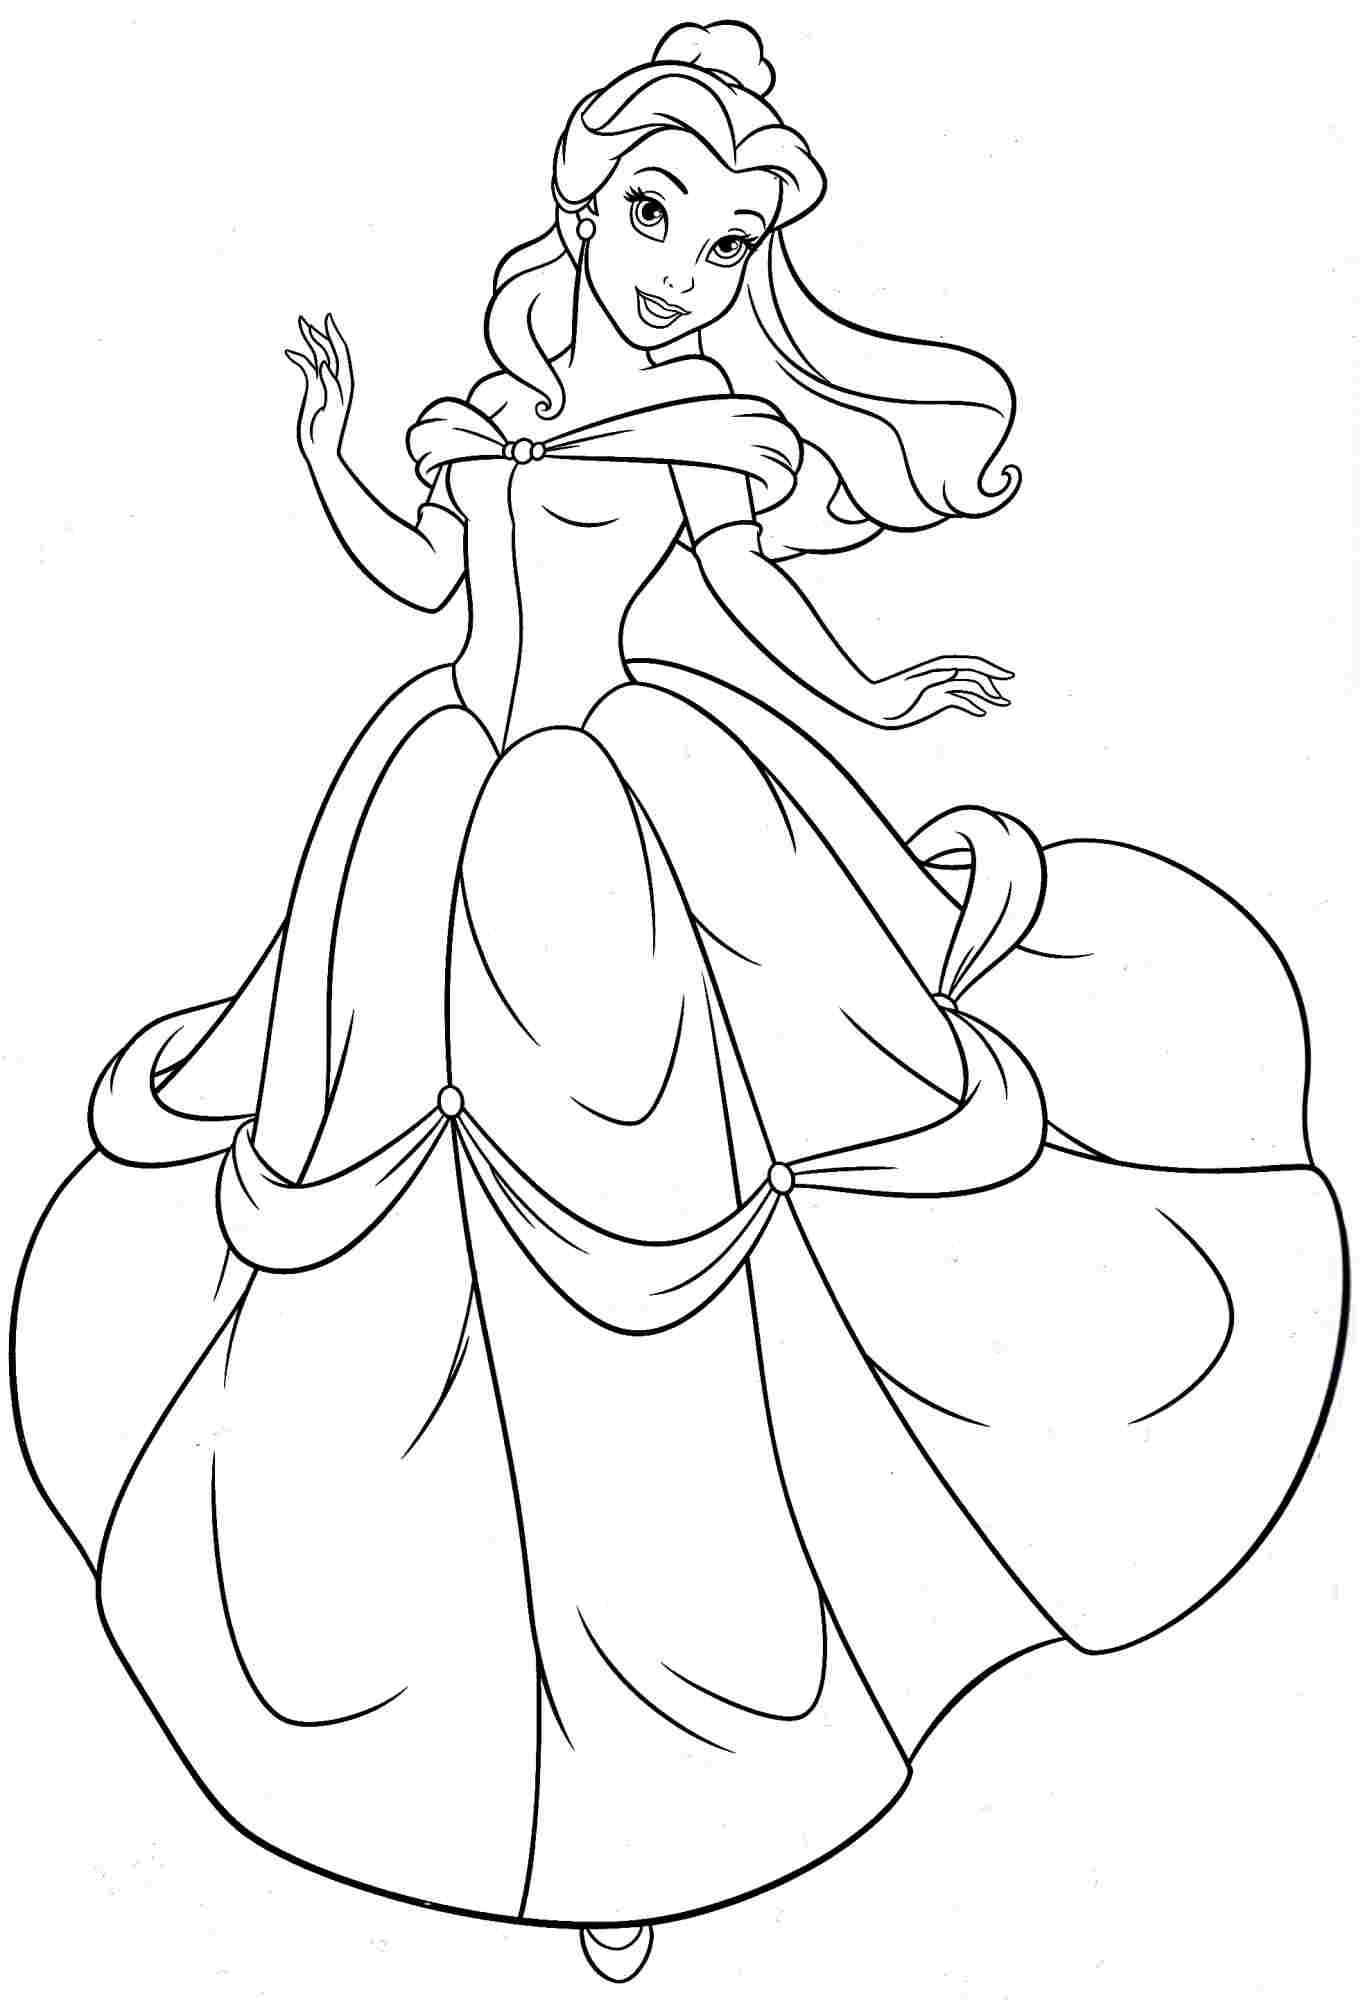 Princess belle coloring pages to